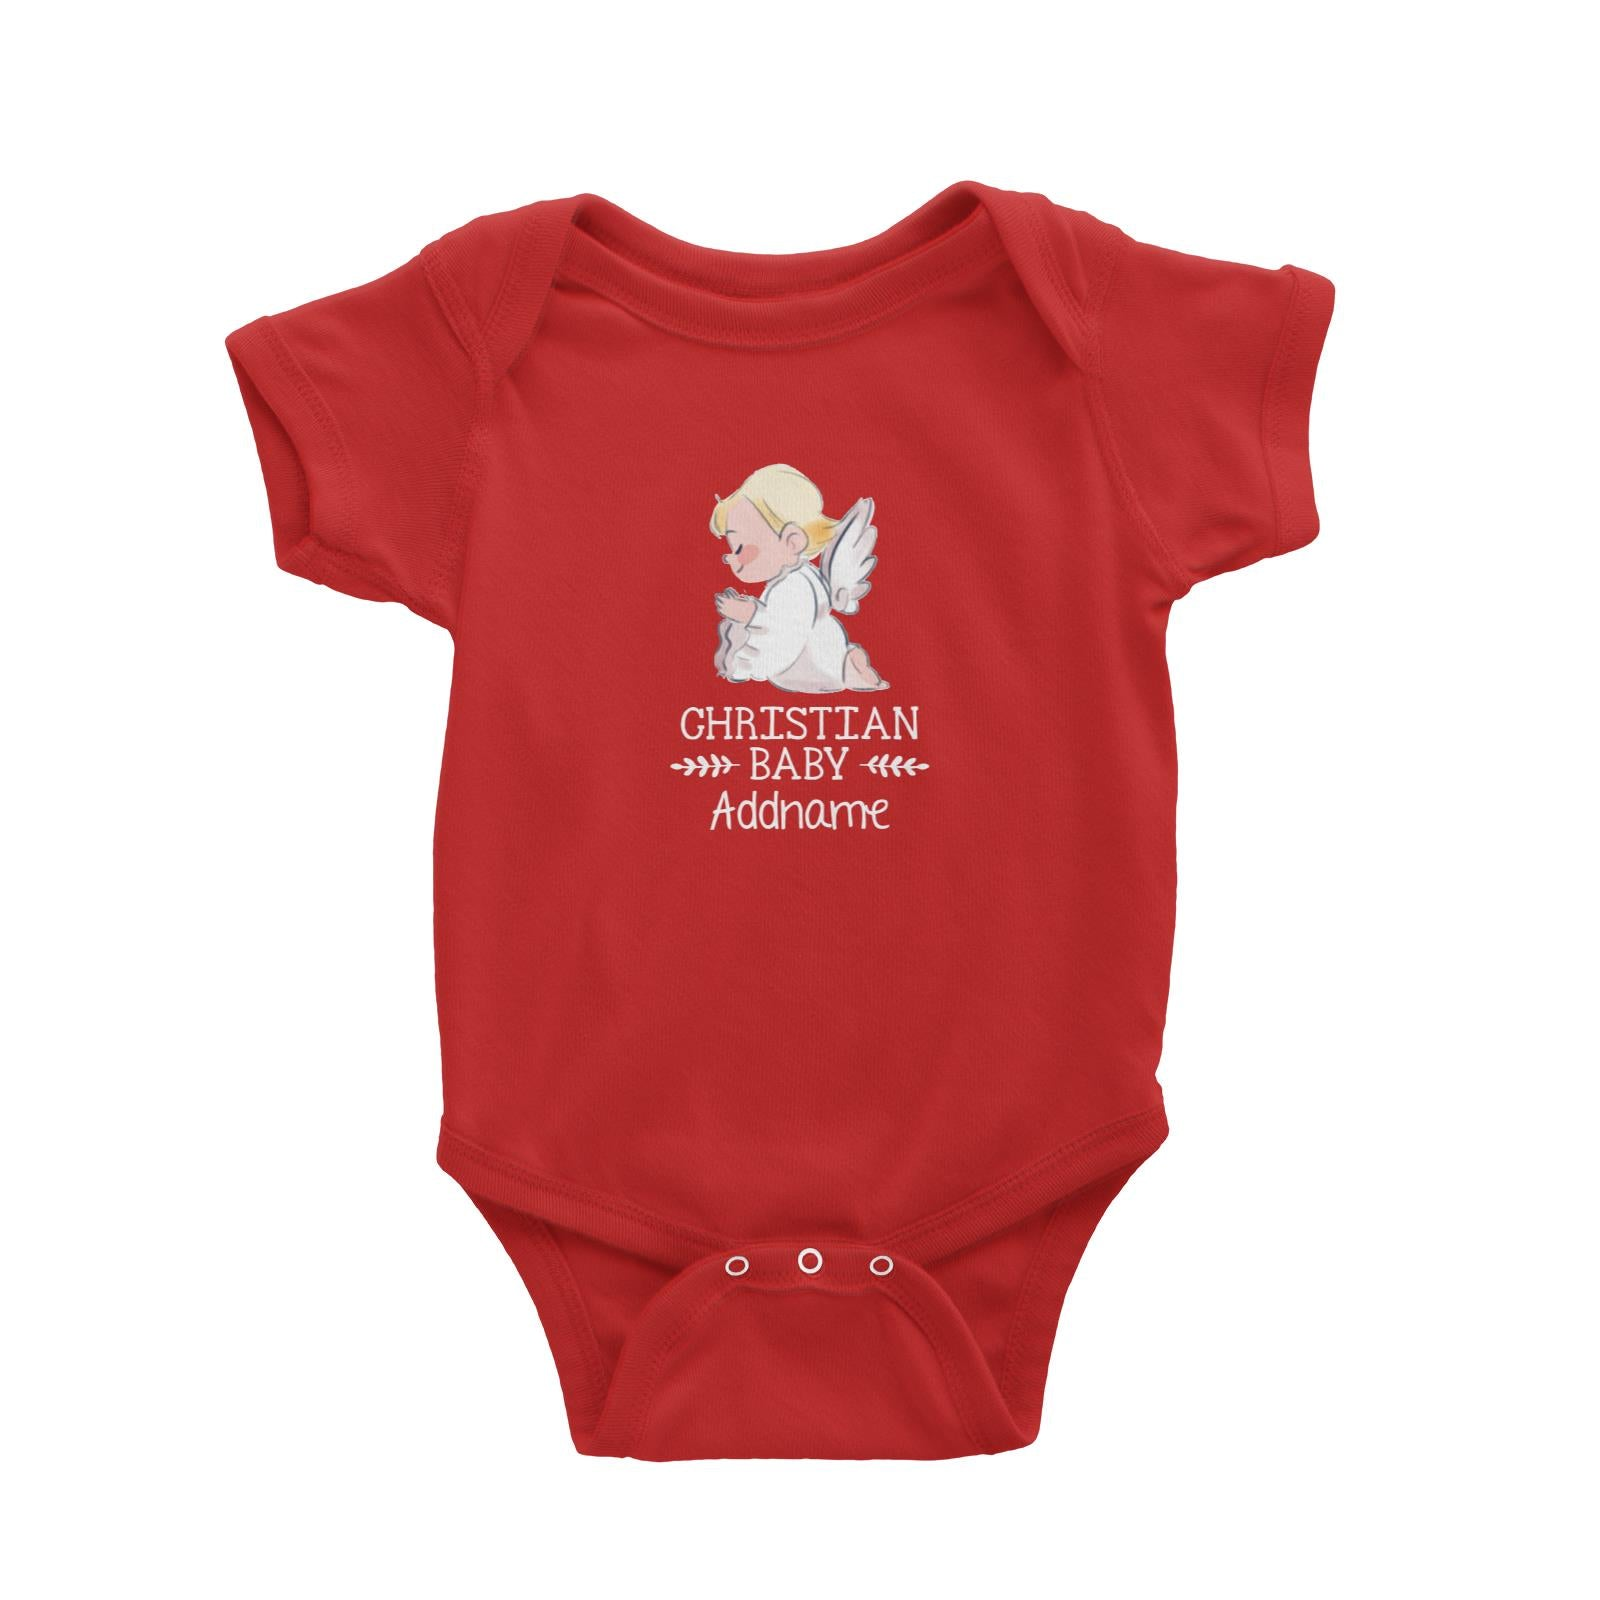 Christian Baby Angel Christian Baby Addname Baby Romper